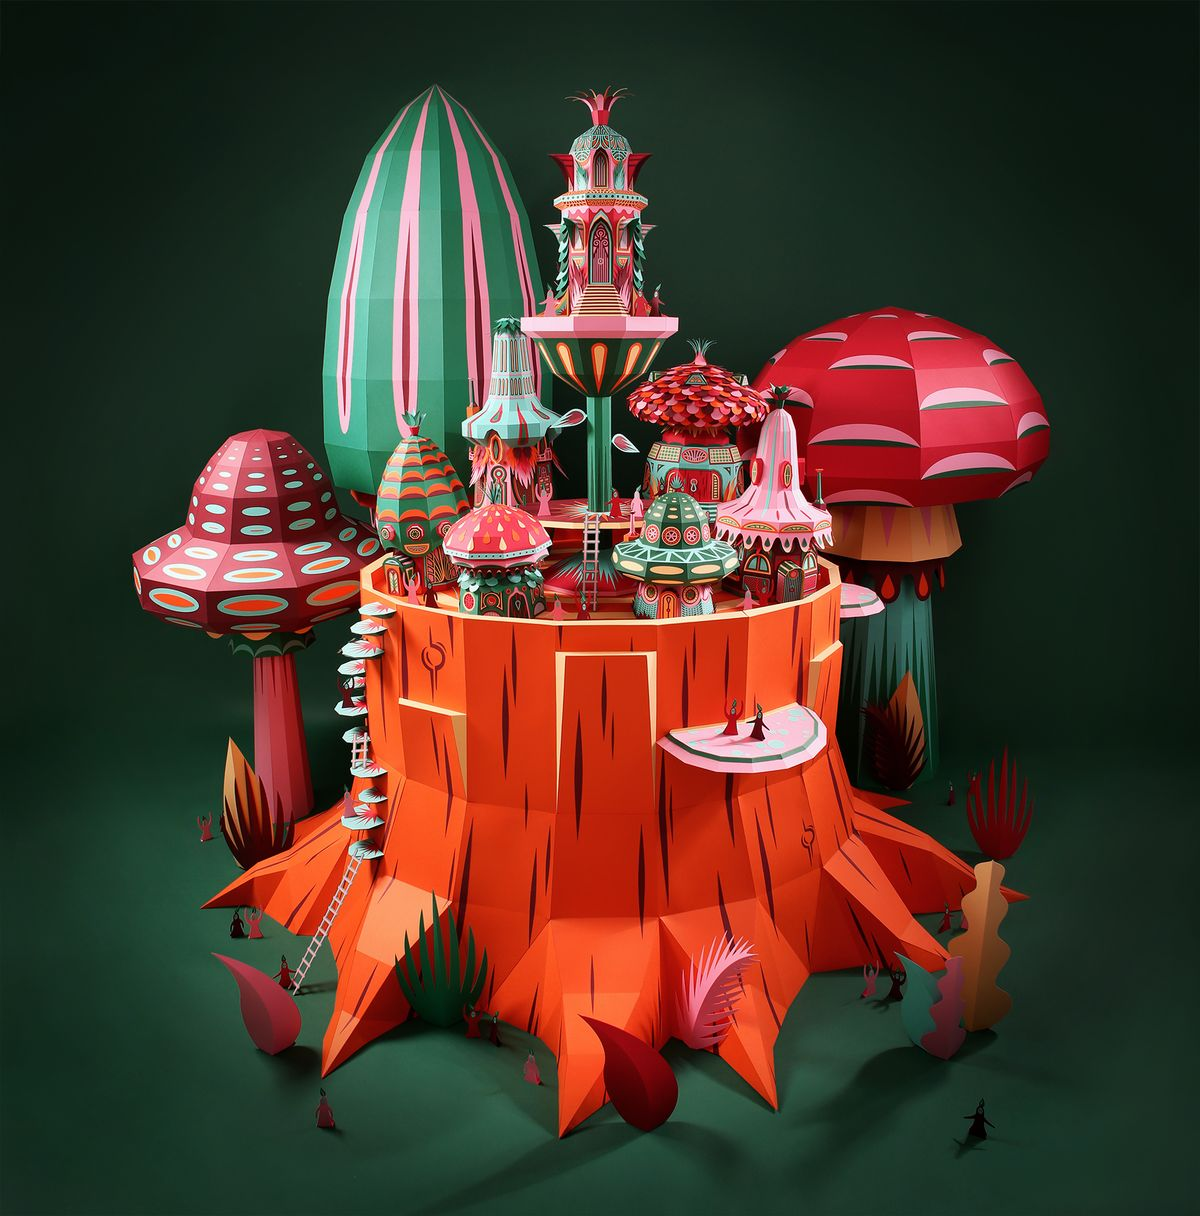 Intricate fairytale forest made with paper by Zim & Zou